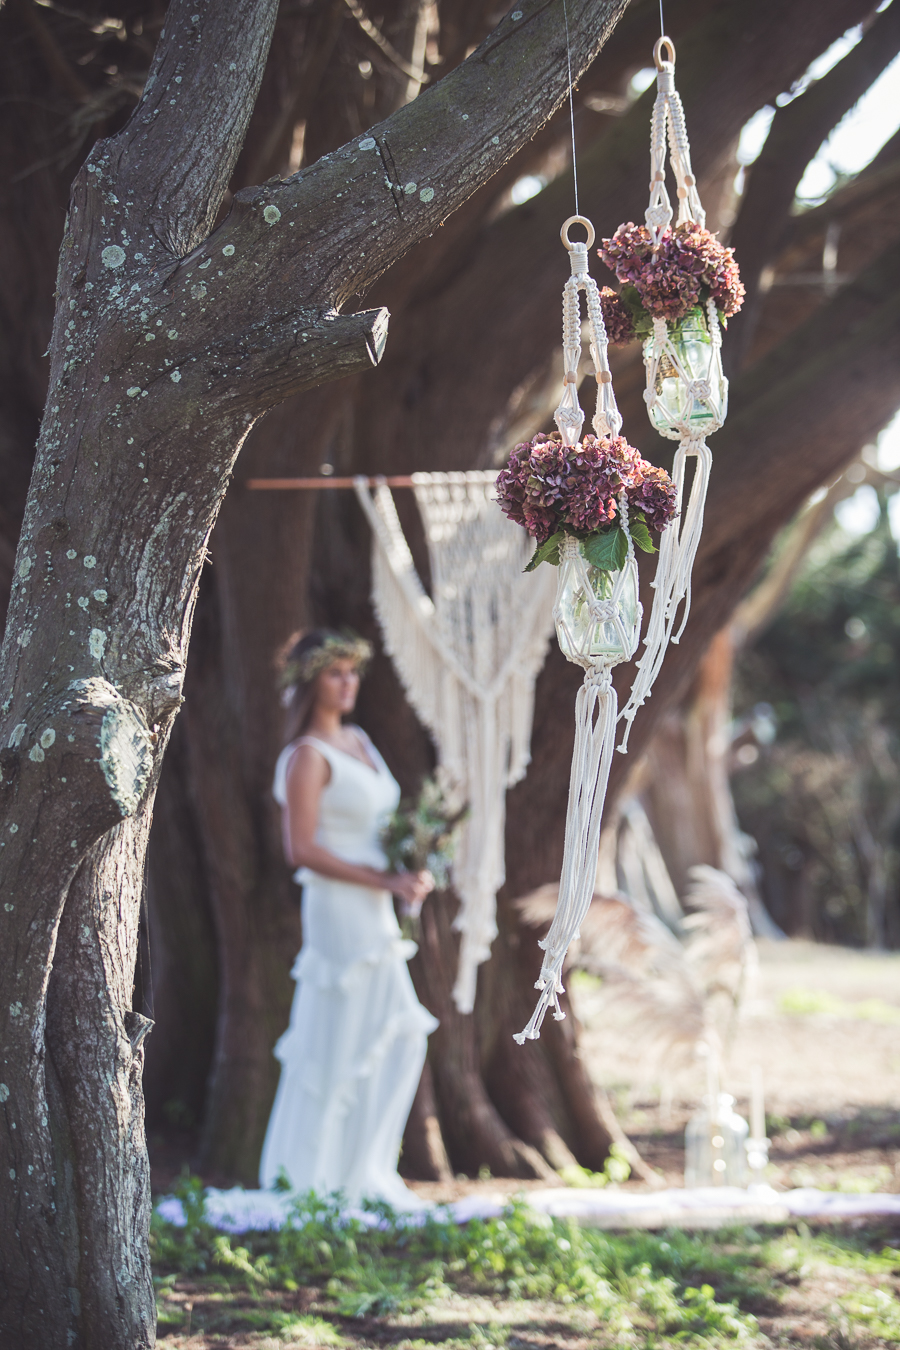 Beach boho wedding styling ideas from the UK, image credit Katie Mortimore (18)